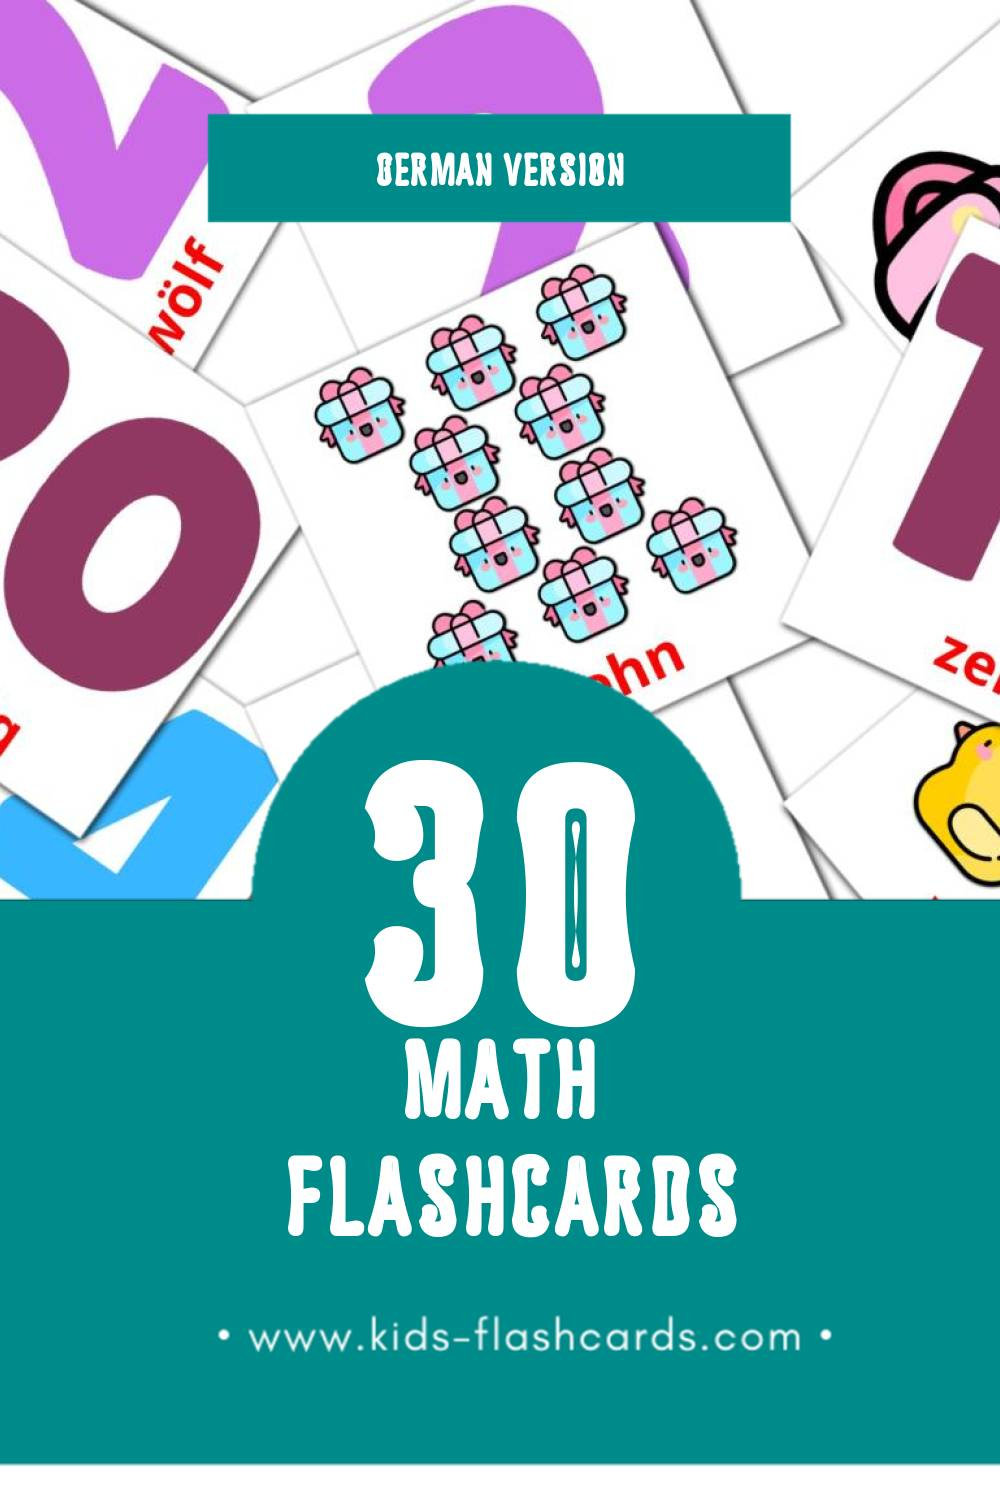 Visual Mathematik Flashcards for Toddlers (30 cards in German)